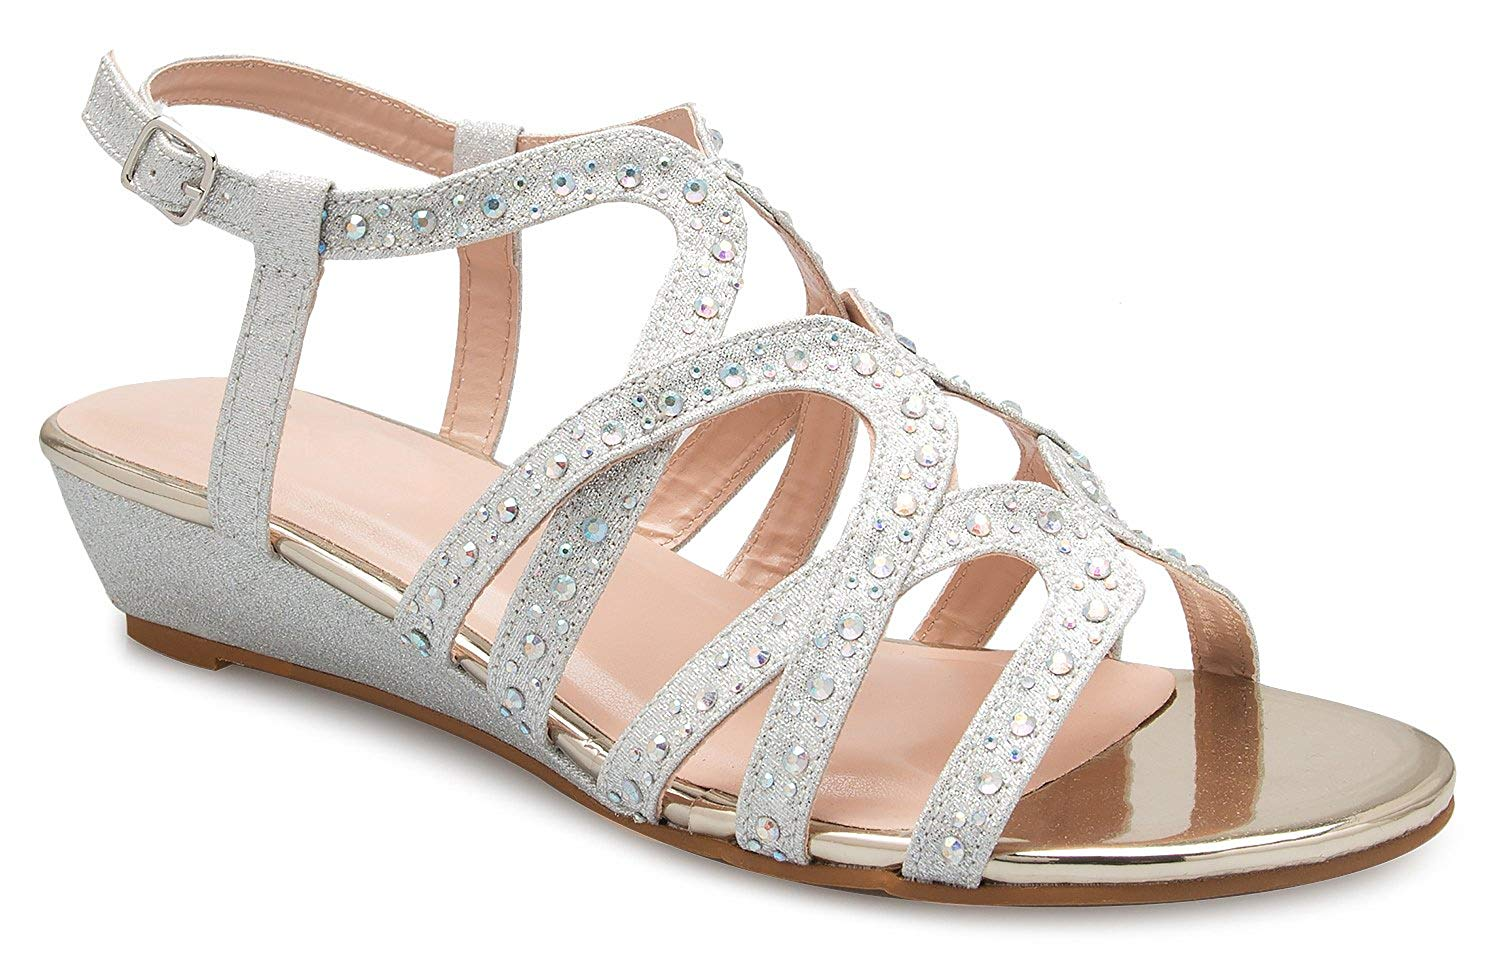 019be7920b3ad Cheap White Strappy Sandals Kitten Heel, find White Strappy Sandals ...